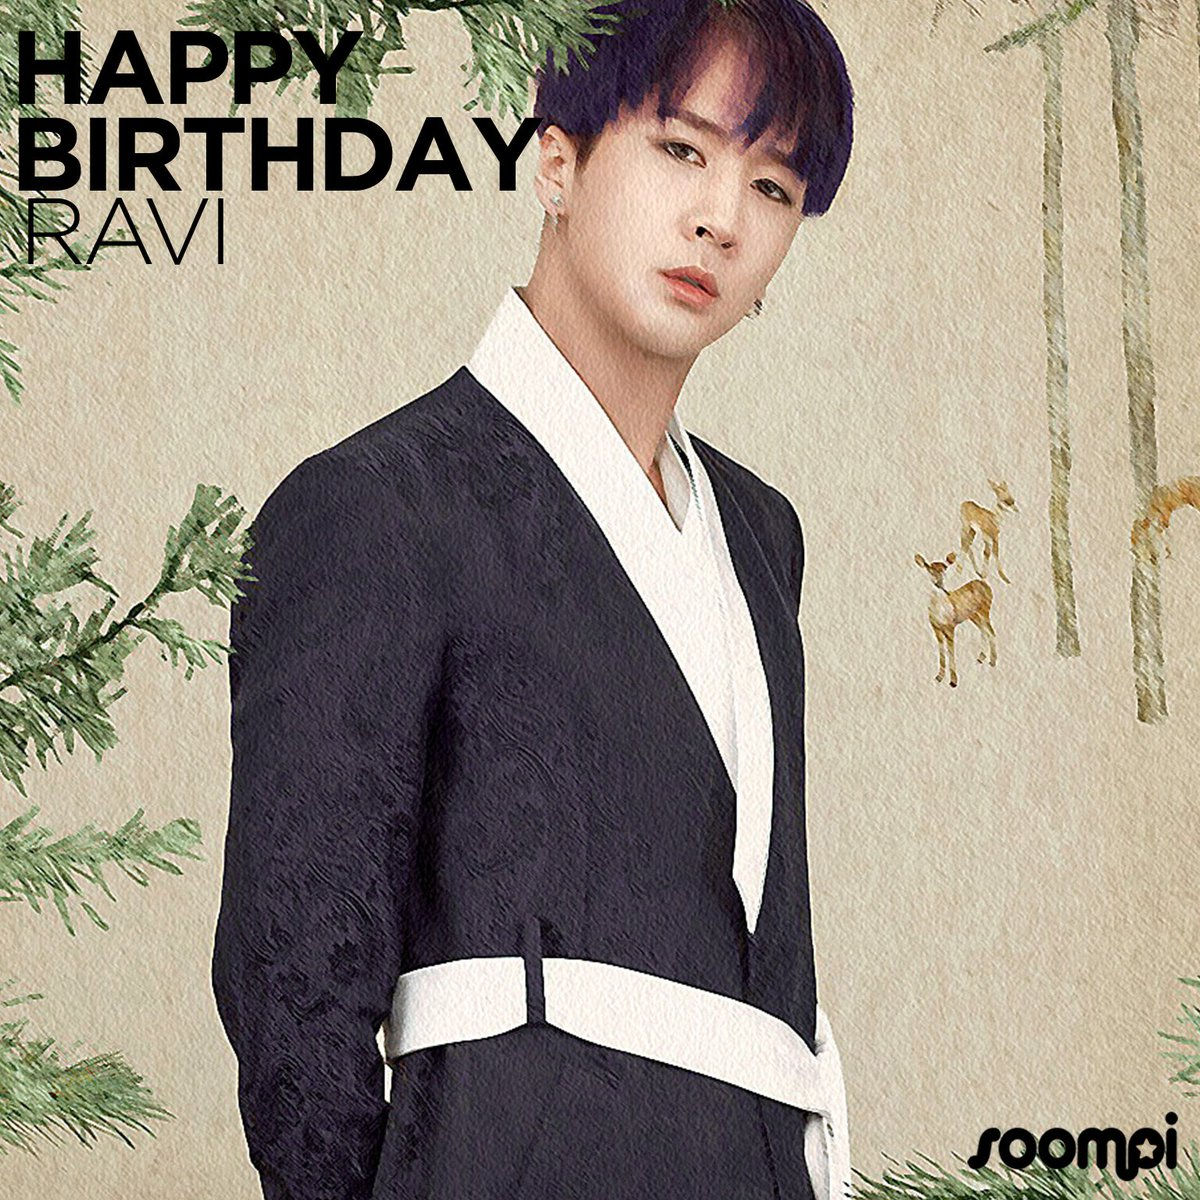 Happy Birthday to #VIXX's Ravi! #HappyRa...